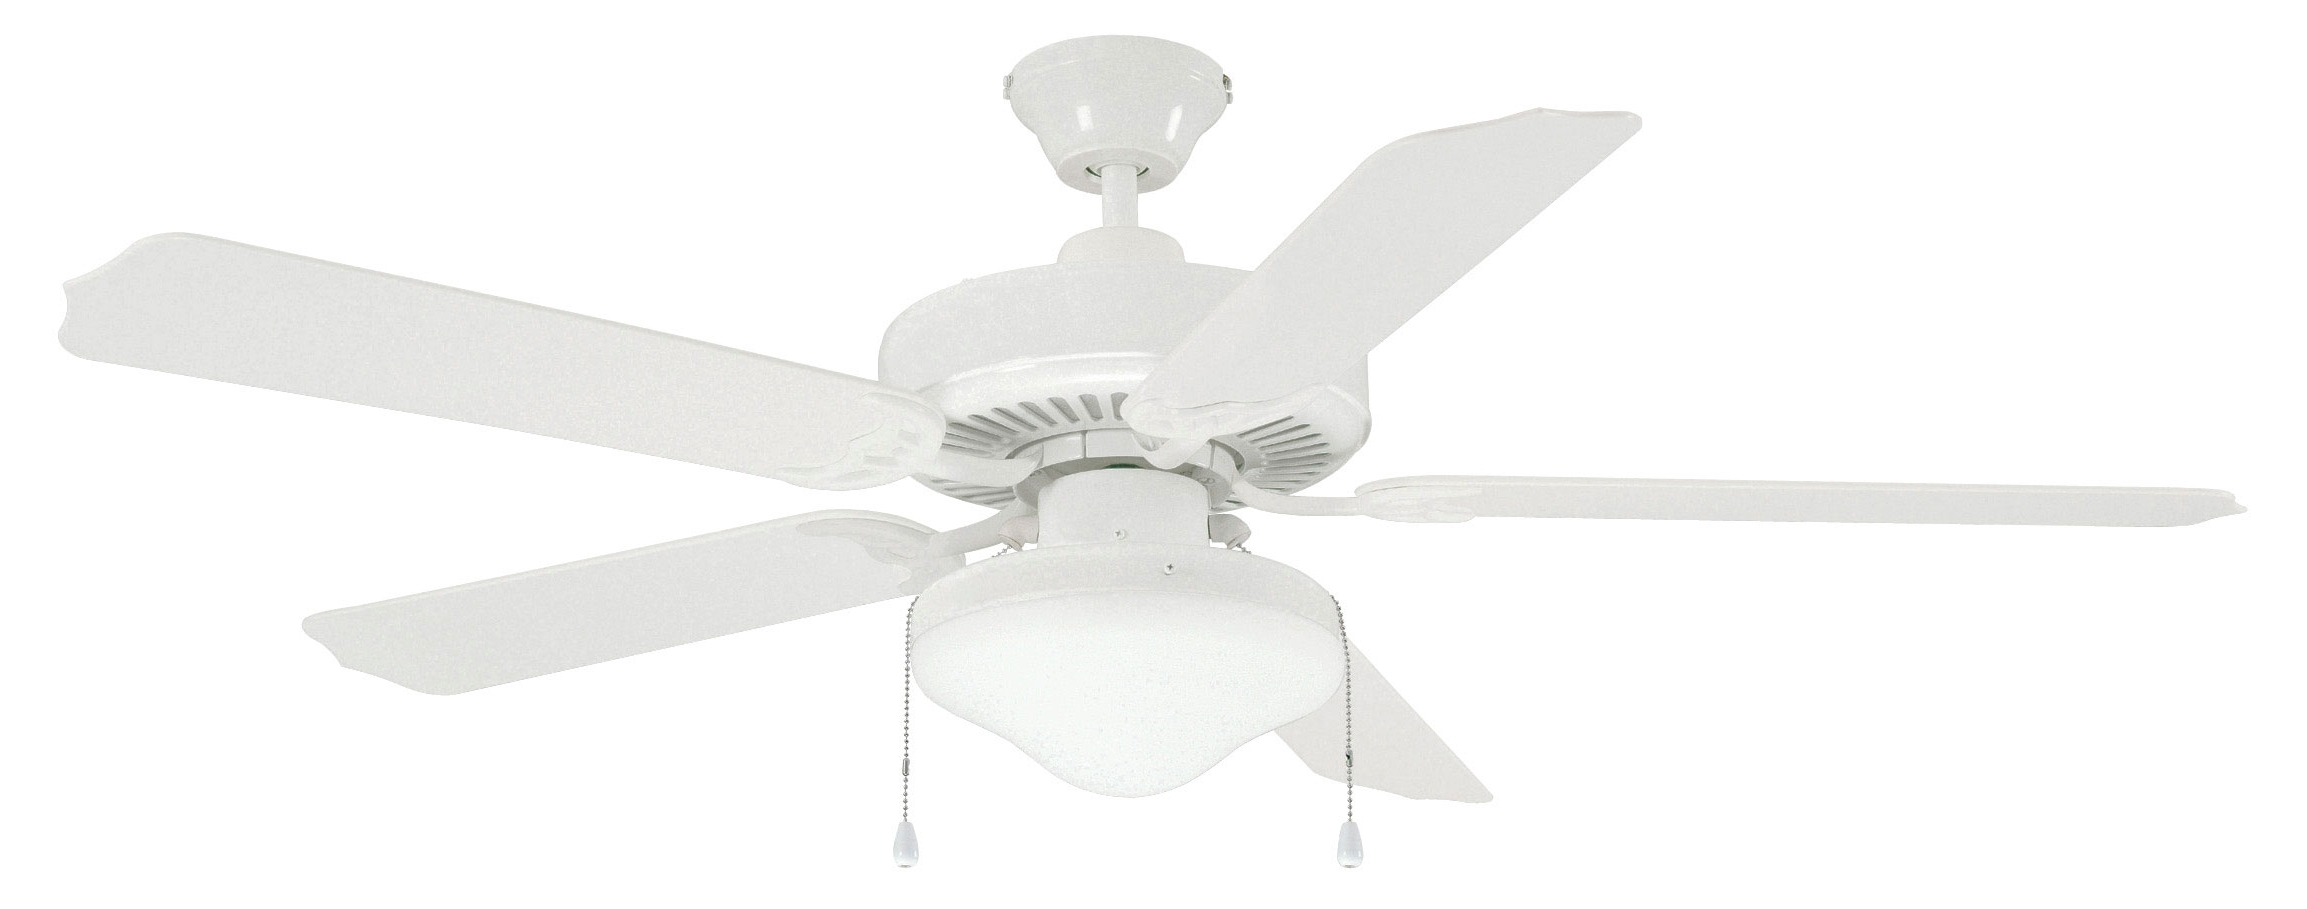 Best And Newest Ceiling Fans White Ceiling Fan With Light Cruise Outdoor Wet Rated Intended For White Outdoor Ceiling Fans With Lights (View 2 of 20)